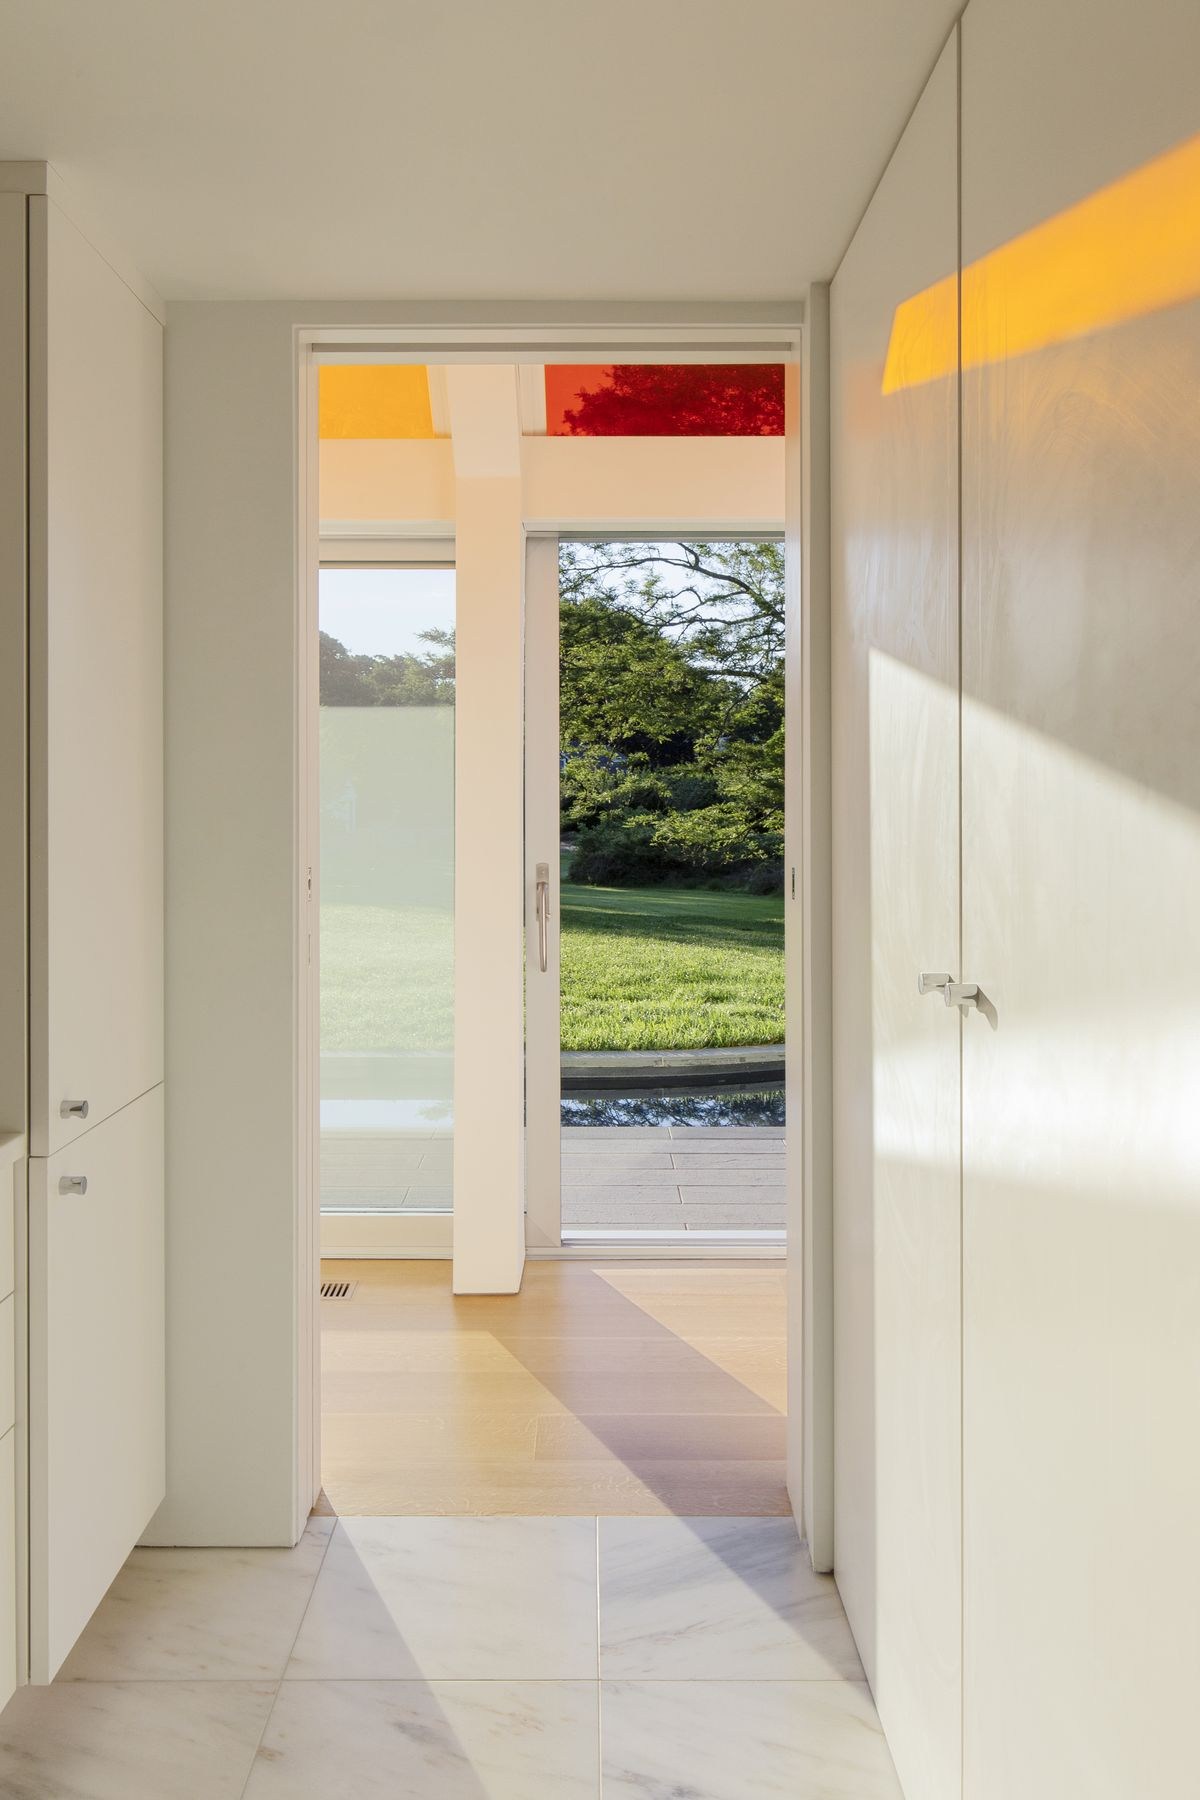 Entryway with white walls and an orange strip of reflection.